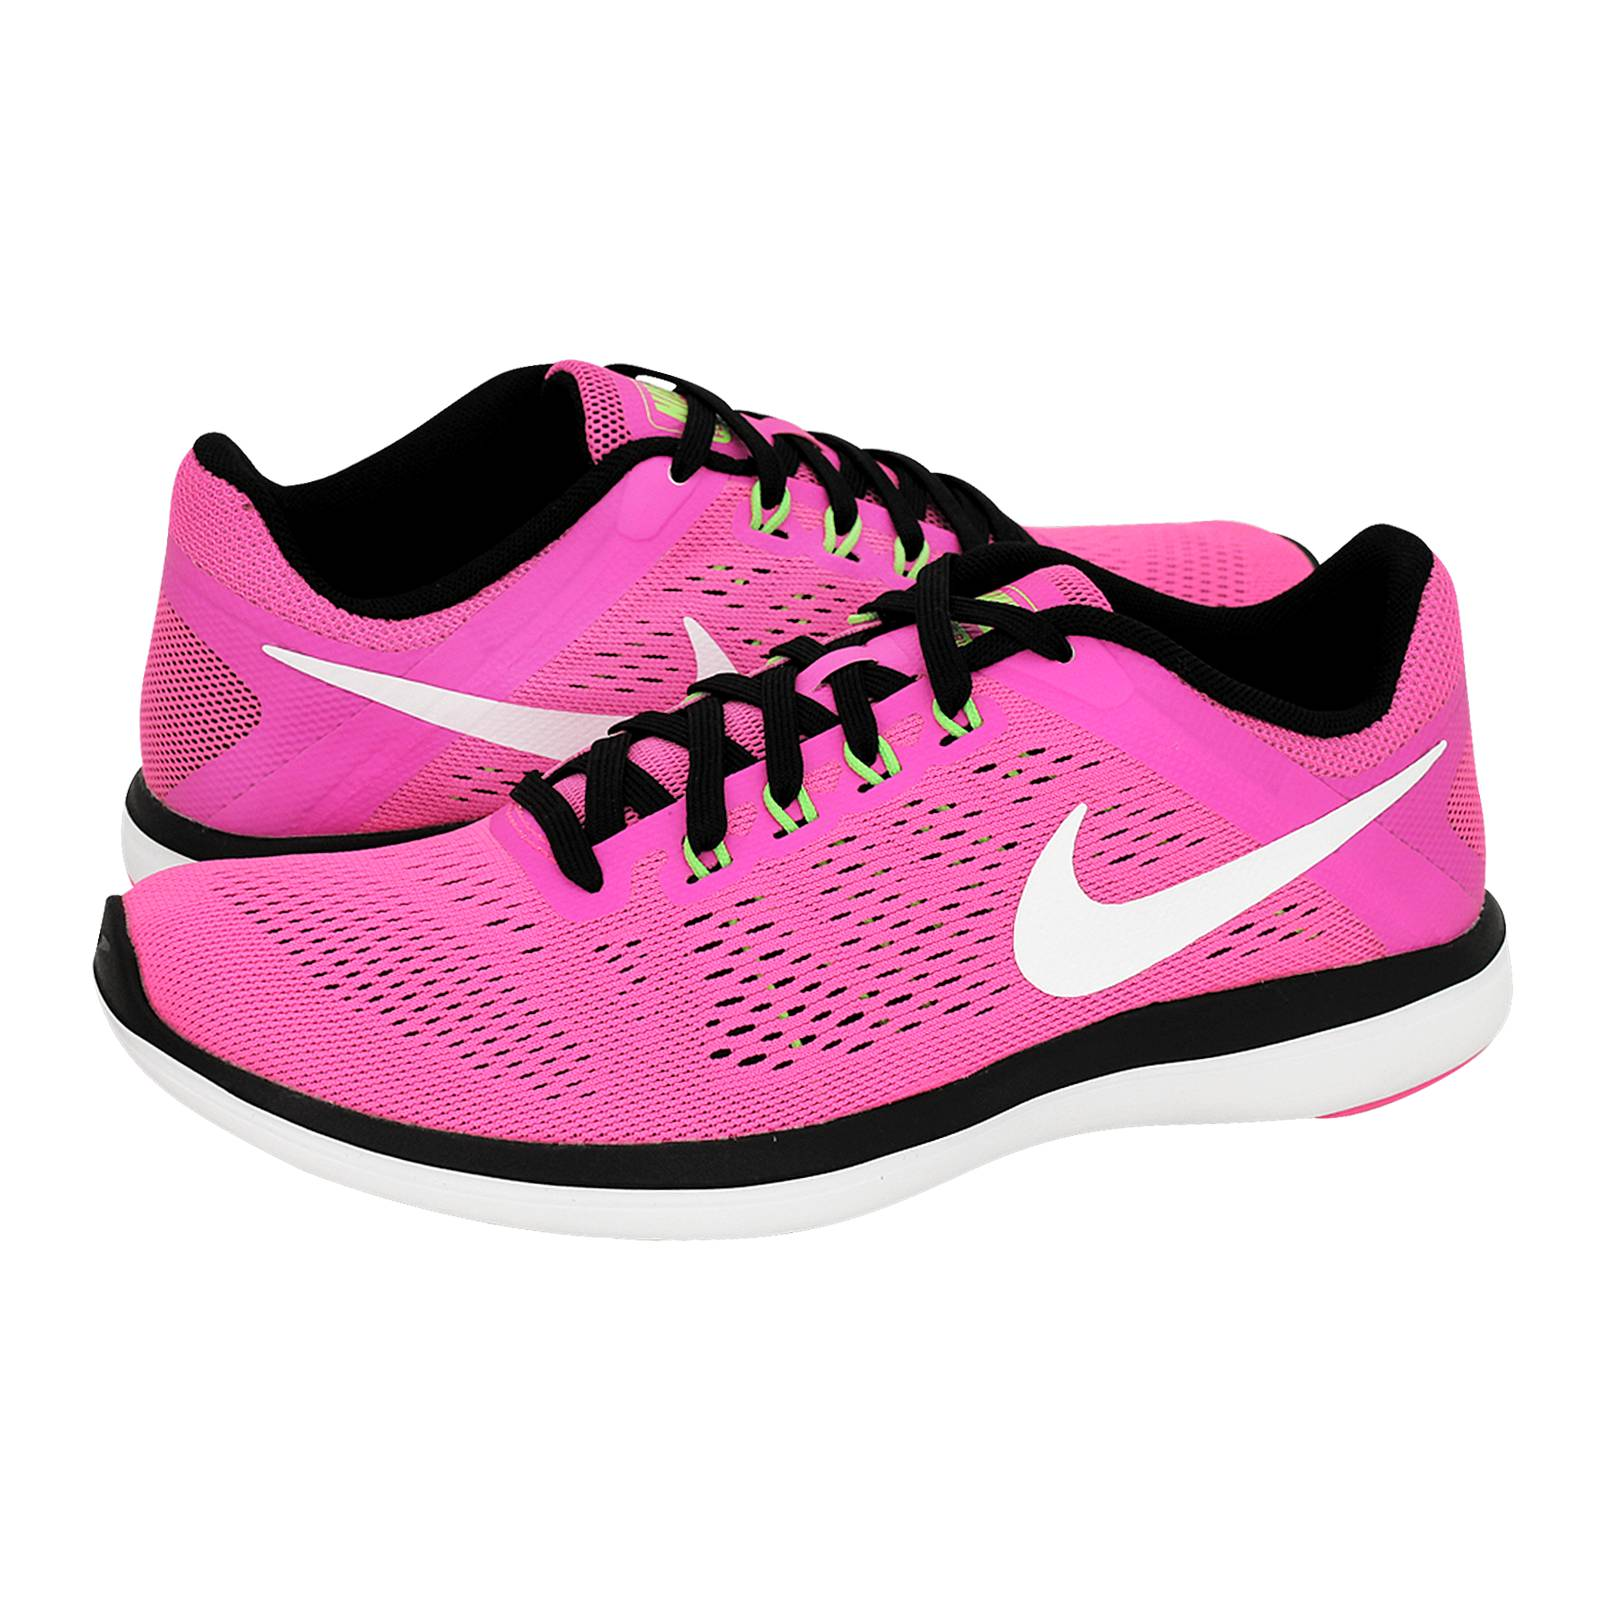 Flex 2016 RN - Nike Women s athletic shoes made of fabric and ... b36291d44